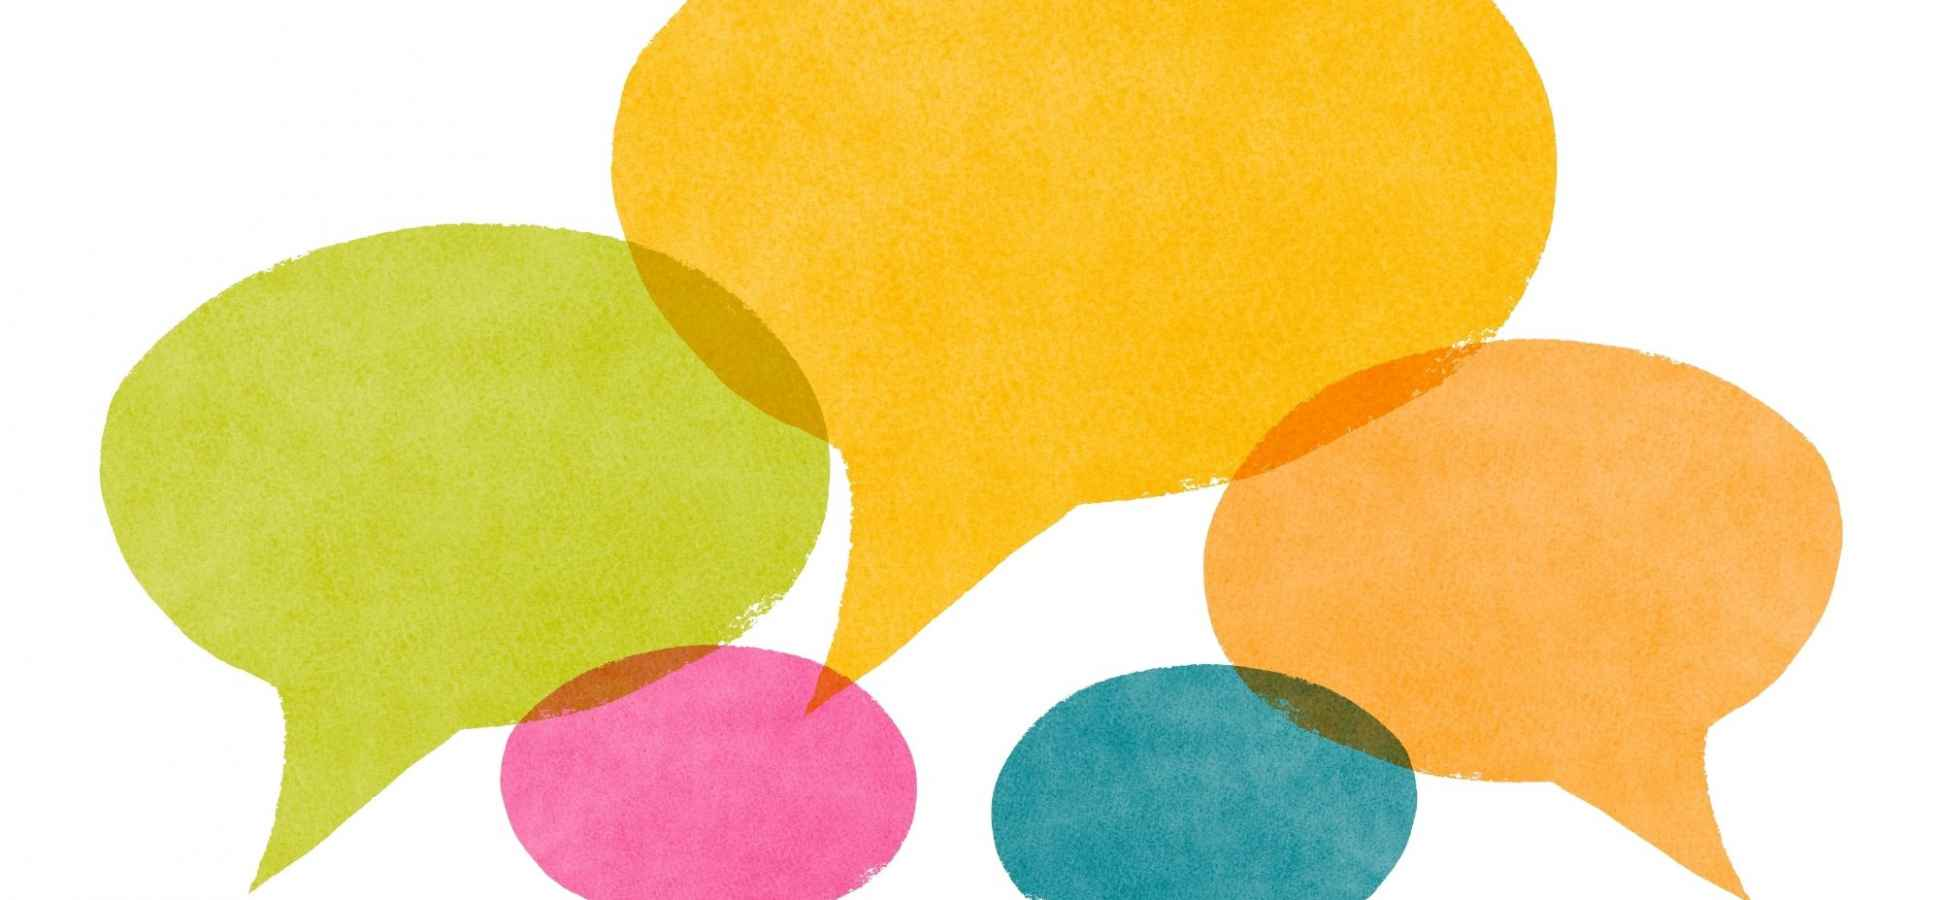 8 Conversations You Should Be Having With Customers on Social Media